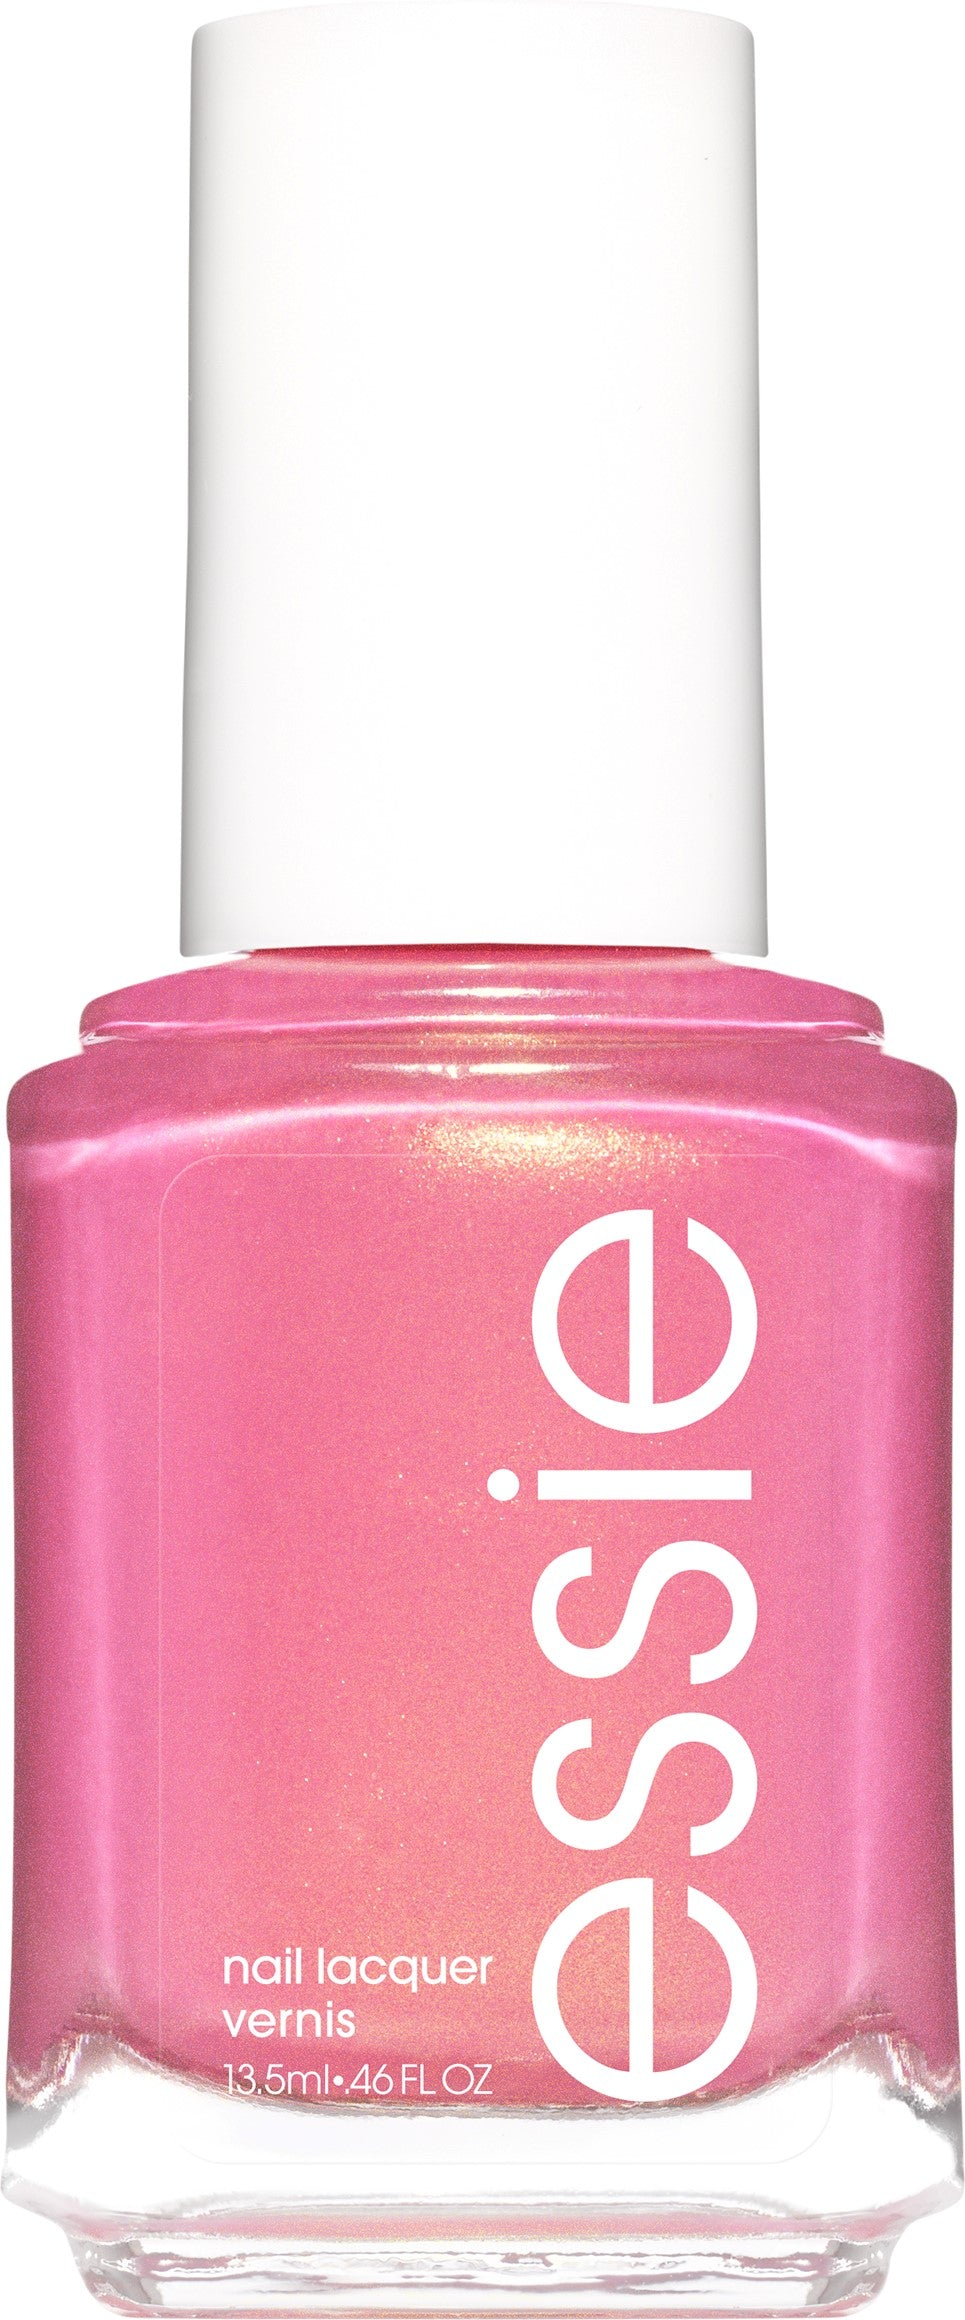 essie nail polish, flying solo collection, twilight pink polish, one way for one, 0.46 oz